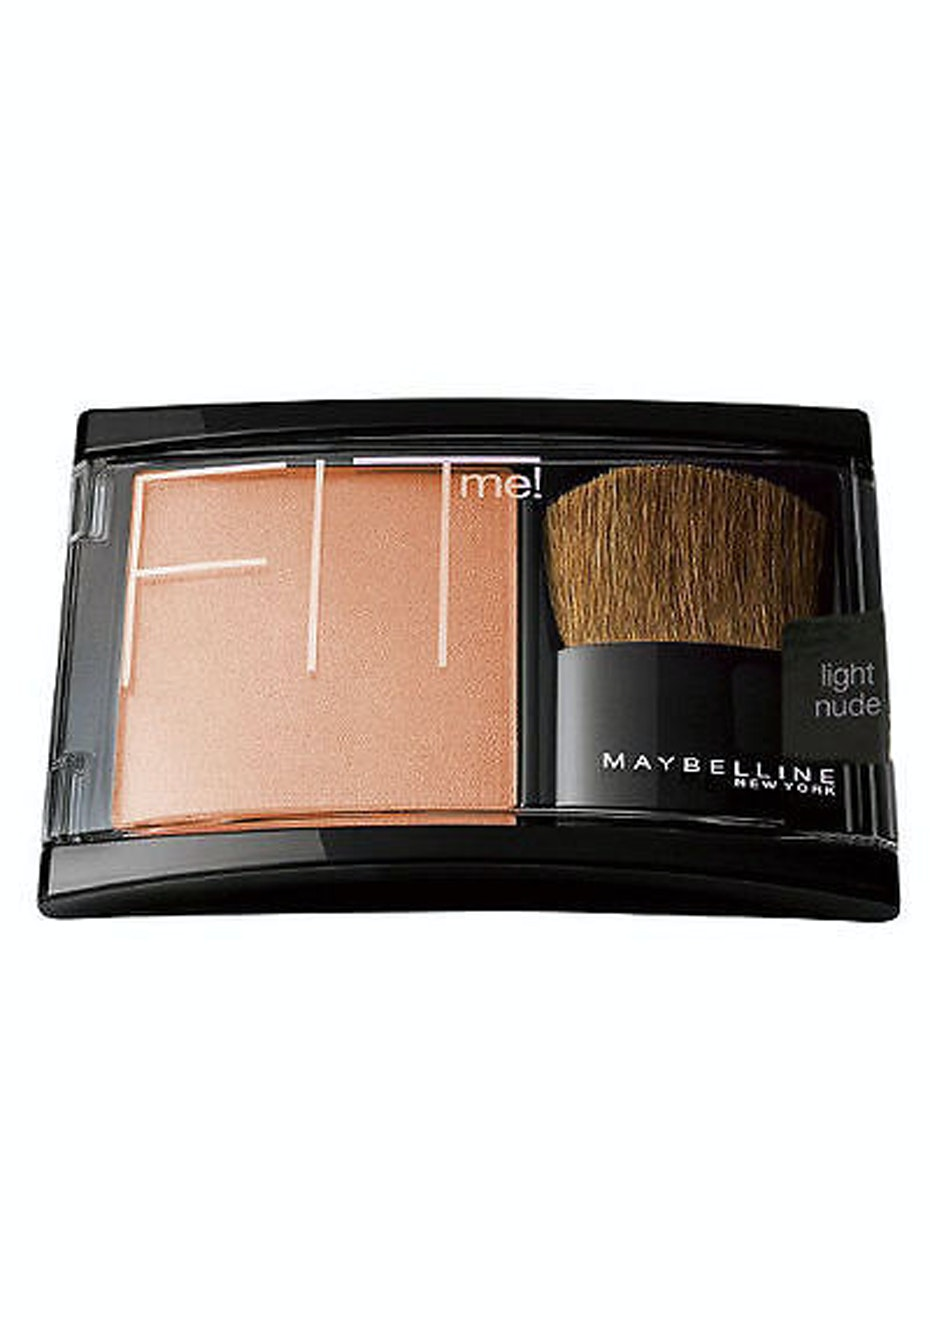 Maybelline Fit Me Blush Light Nude